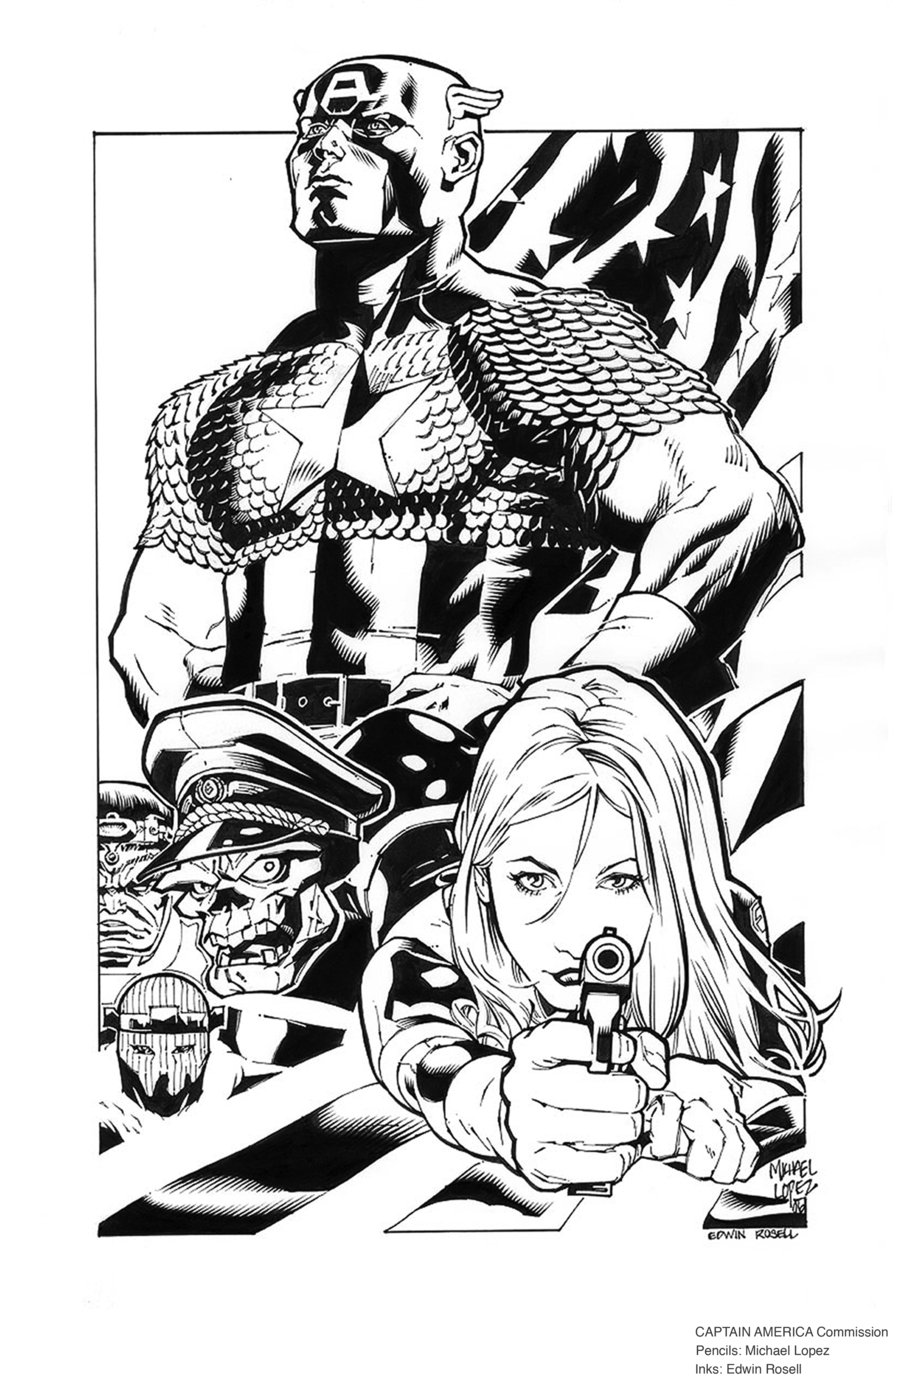 captain_america_inks_by_erosell-d4mg3qd